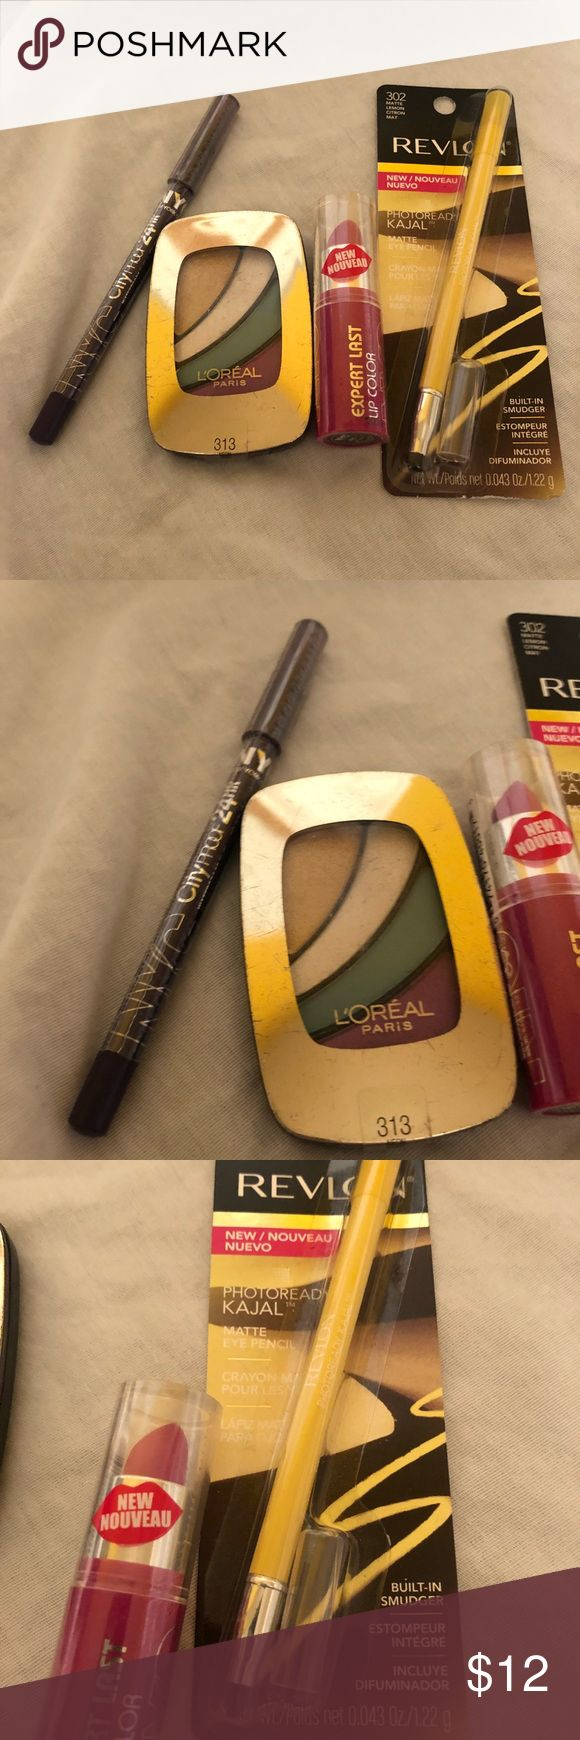 Colorful Makeup Bundle - New All new and unopened.  Includes: Revlon Matte Eye Pencil in Lemon (302) NYC Waterprood Eyeliner Pencil in Smokey Plum (934) L'Oreal Eye Shadow In Neon Skirt (313) NYC Lip Color in Blue Rose (405) NYC Makeup